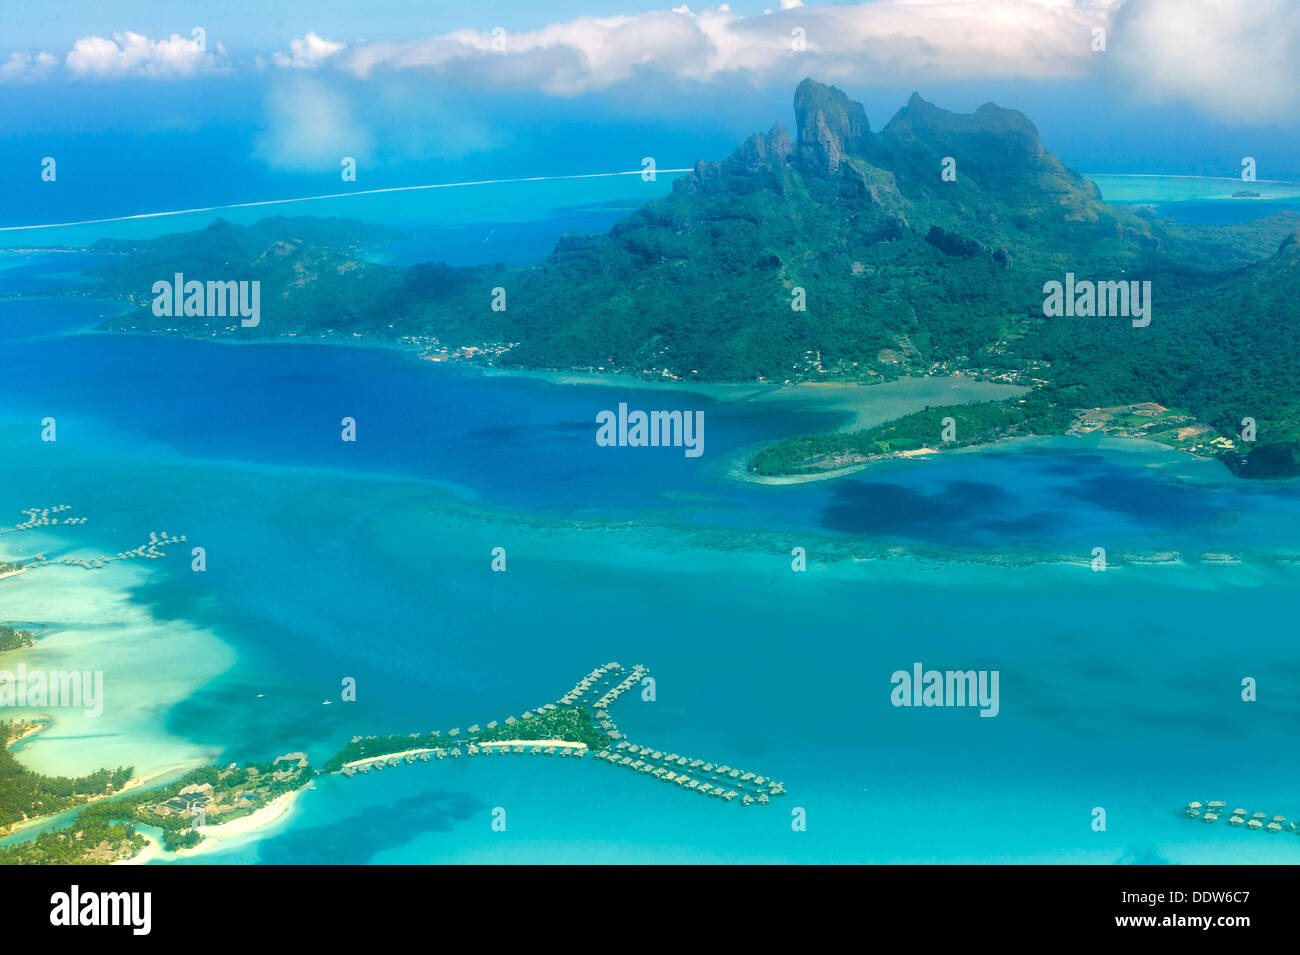 View of Bora Bora from the air with bungalows over water and Mt Otemanu. French Polynesia - Stock Image